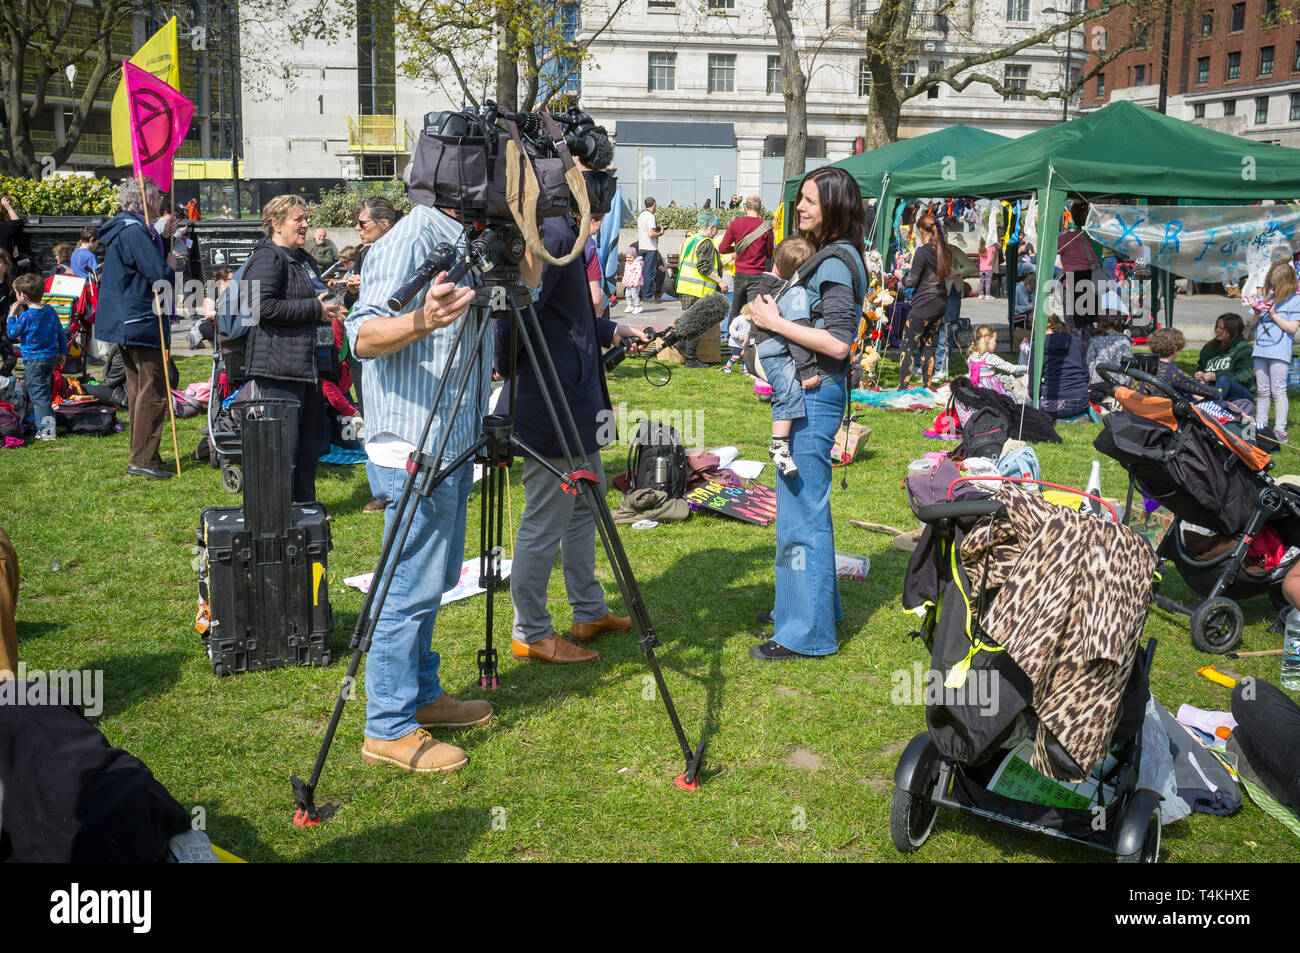 A TV media crew film an interview at the Extinction Rebellion demonstration in Marble Arch - Stock Image